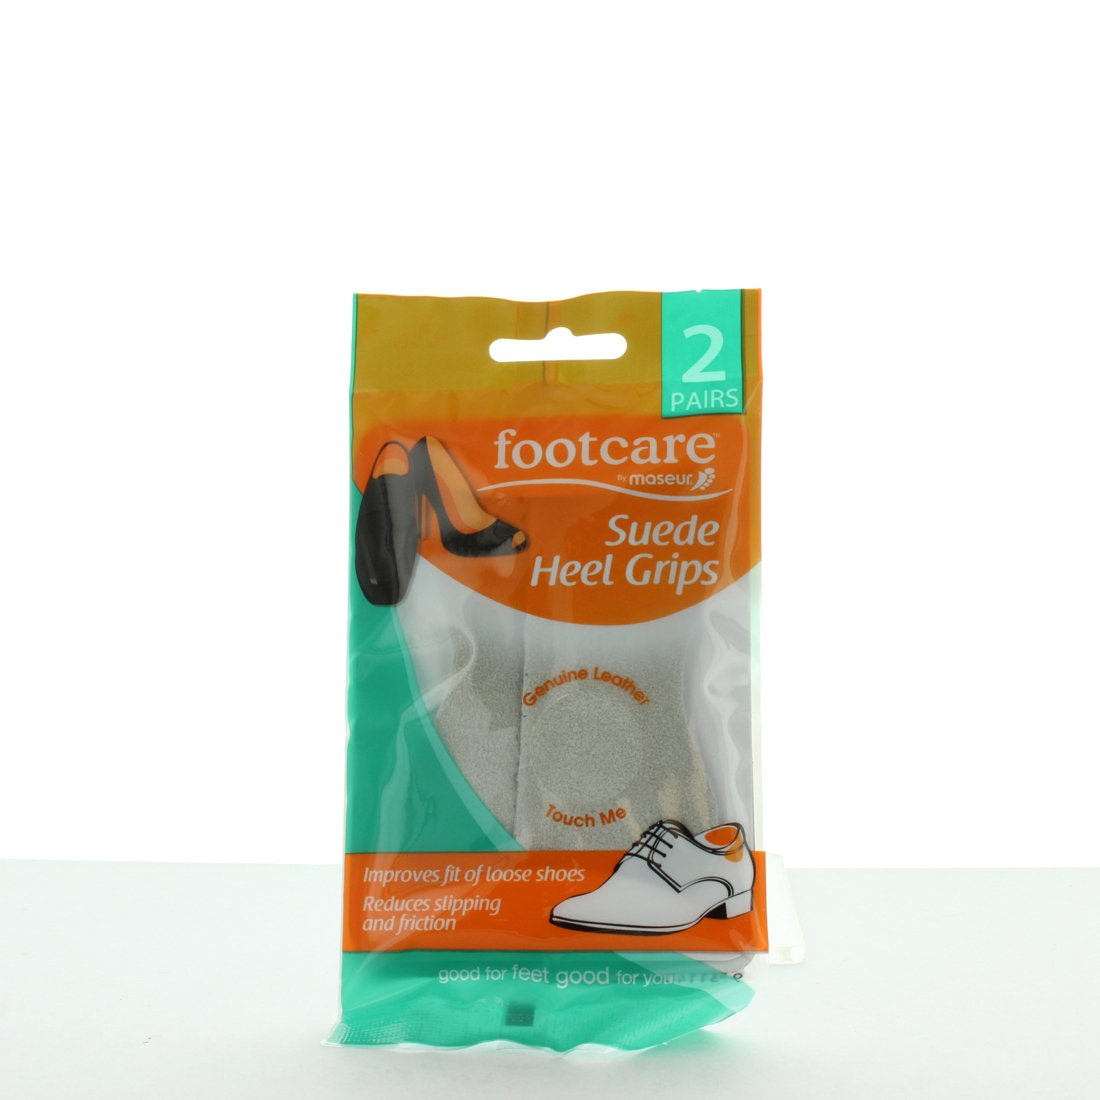 SUEDE HEEL GRIPS by FOOTCARE - iShoes - Accessories, Accessories: Shoe Care - SHOECARE-UNISEX